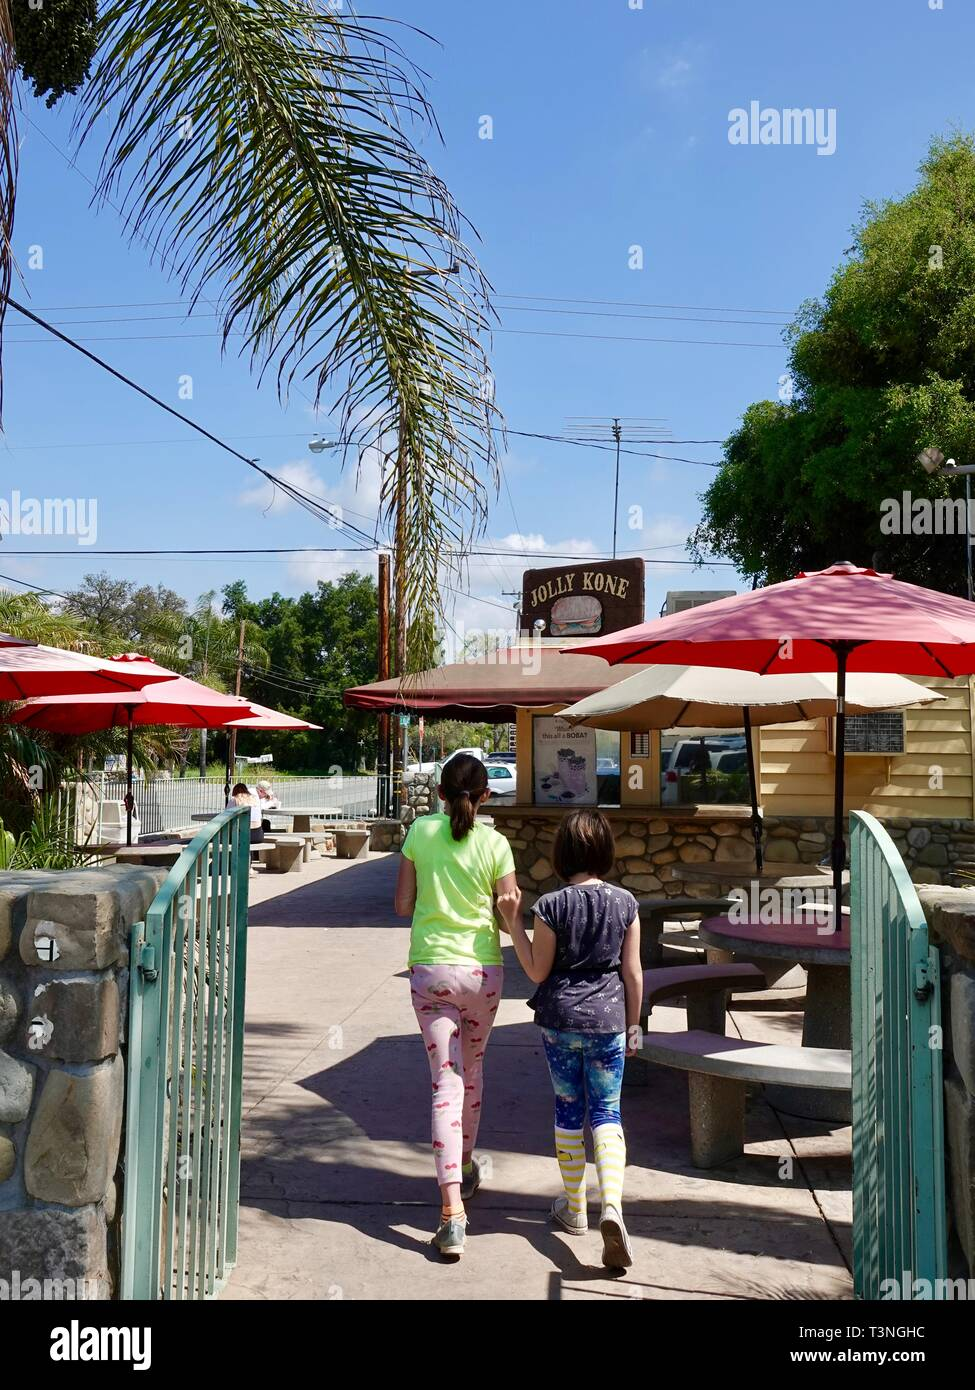 Two girls walking towards the iconic Jolly Kone restaurant in Ojai, California, USA. - Stock Image